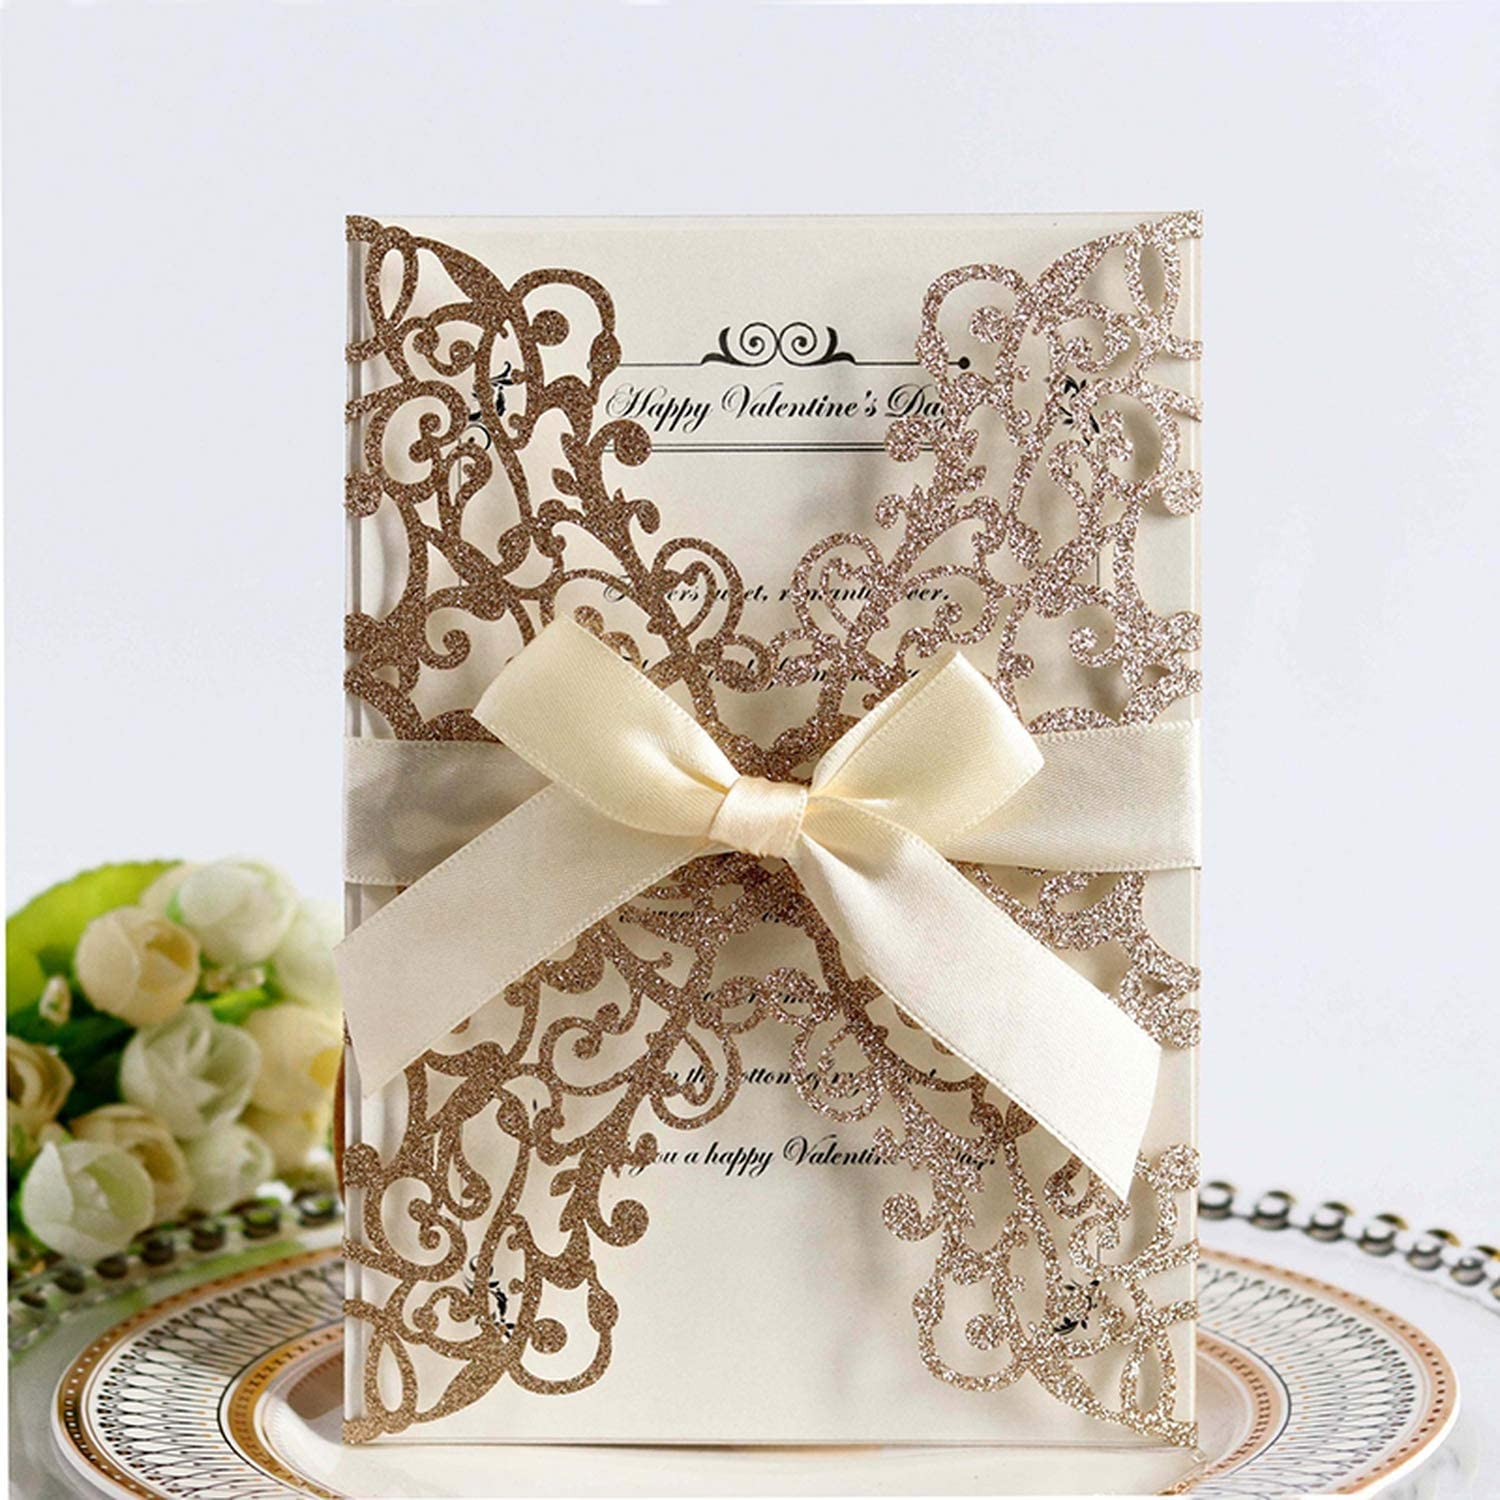 100Pcs Glitter Paper Laser Cut Wedding Invitation Card /& Ribbon Customize Business Greeting Card Birthday Wedding Party Supplies,Only White Envelopes,180X125 Mm